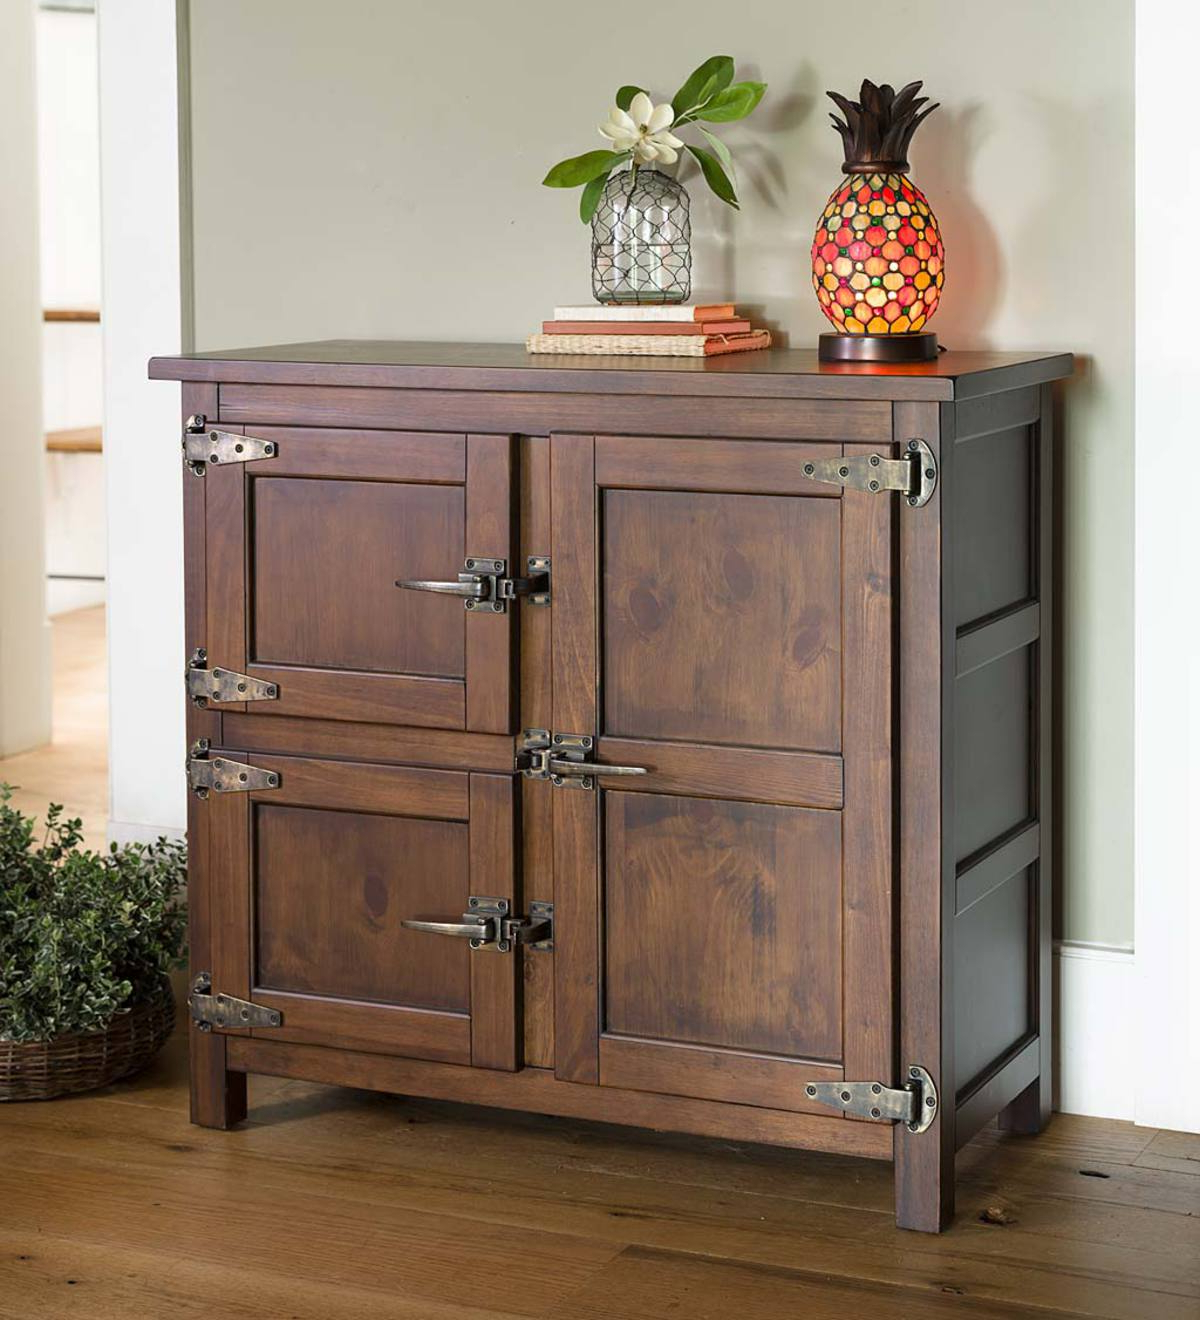 Indoor Furniture Intended For Reclaimed 3 Drawer Icebox Sideboards (View 7 of 20)